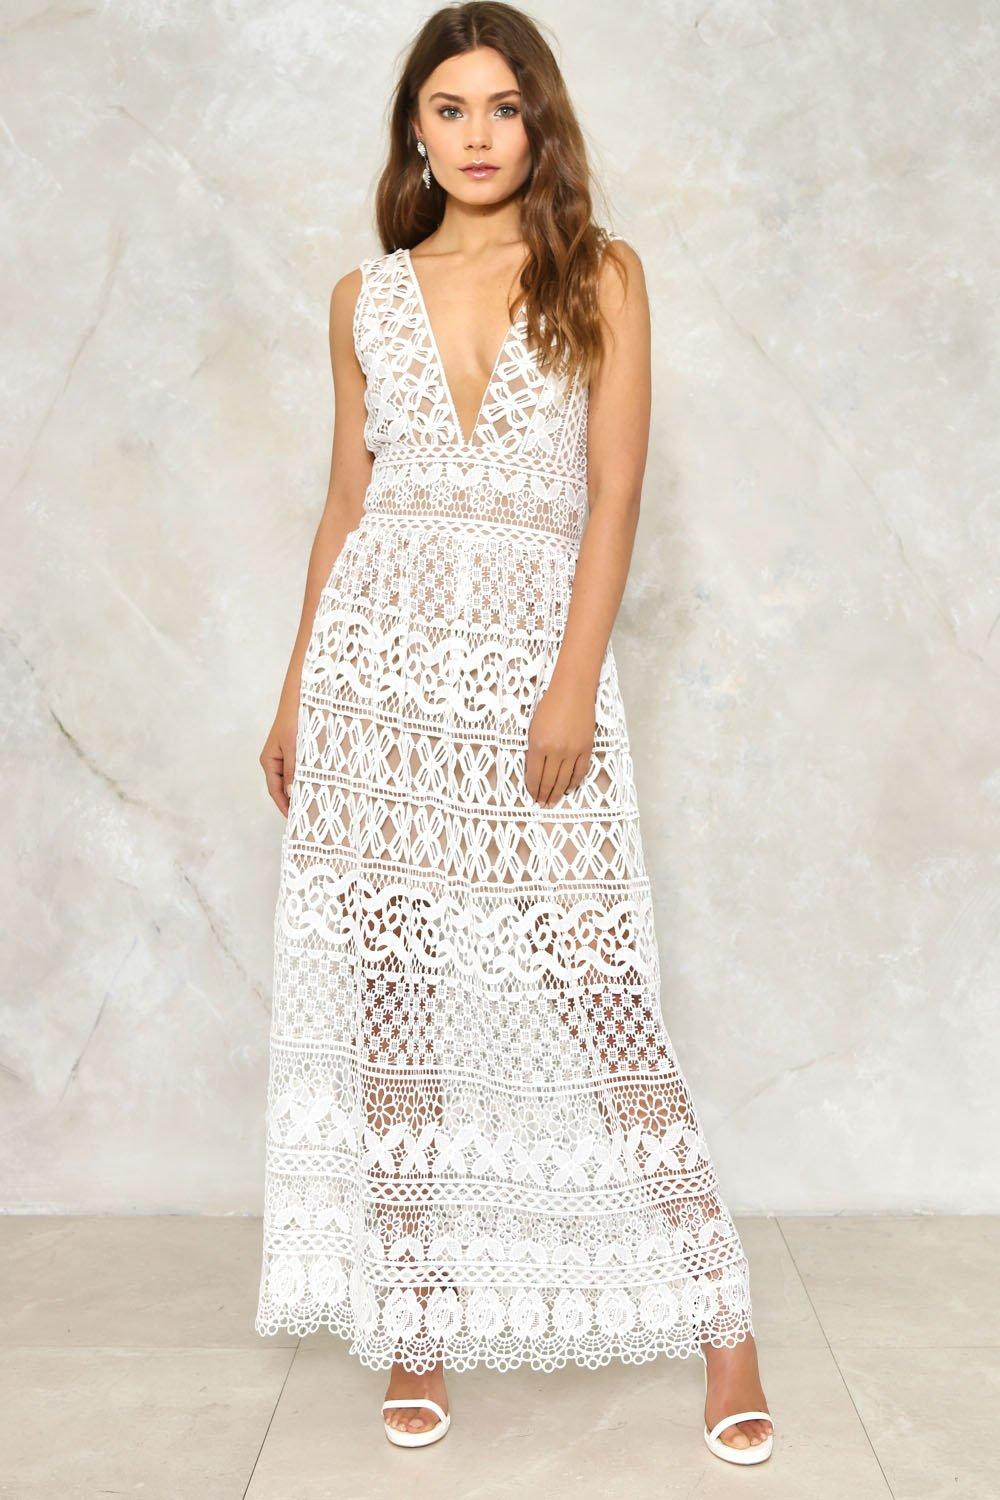 Crochet Clothing New Crochet Dress Crochet It Up thefashiontamer Of Awesome 49 Images Crochet Clothing